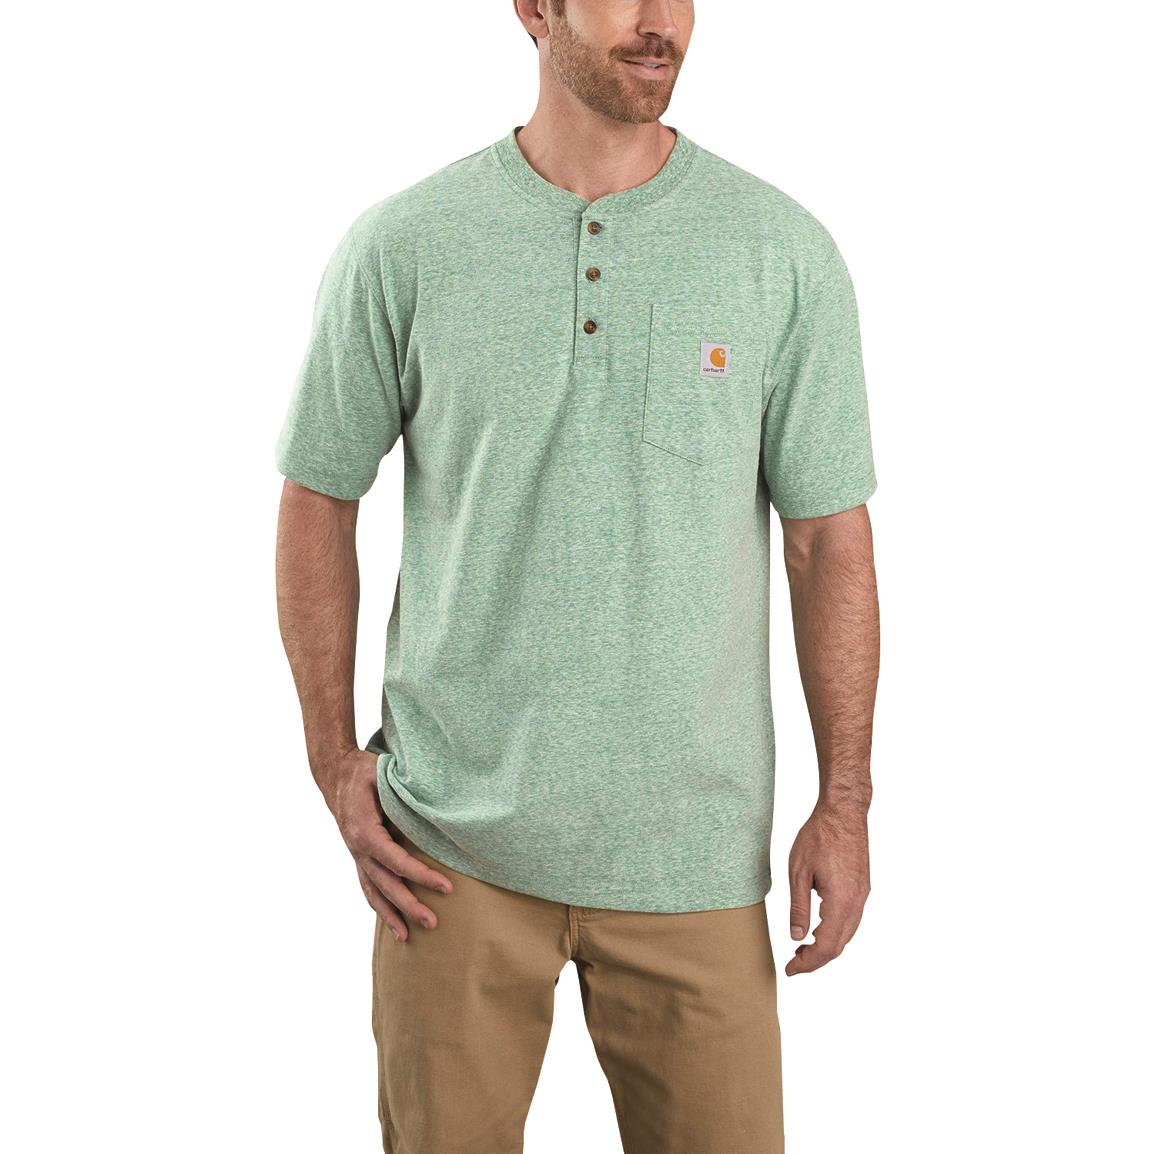 Carhartt Men's Workwear Short Sleeve Henley Pocket Shirt, Musk Green Snow Heather